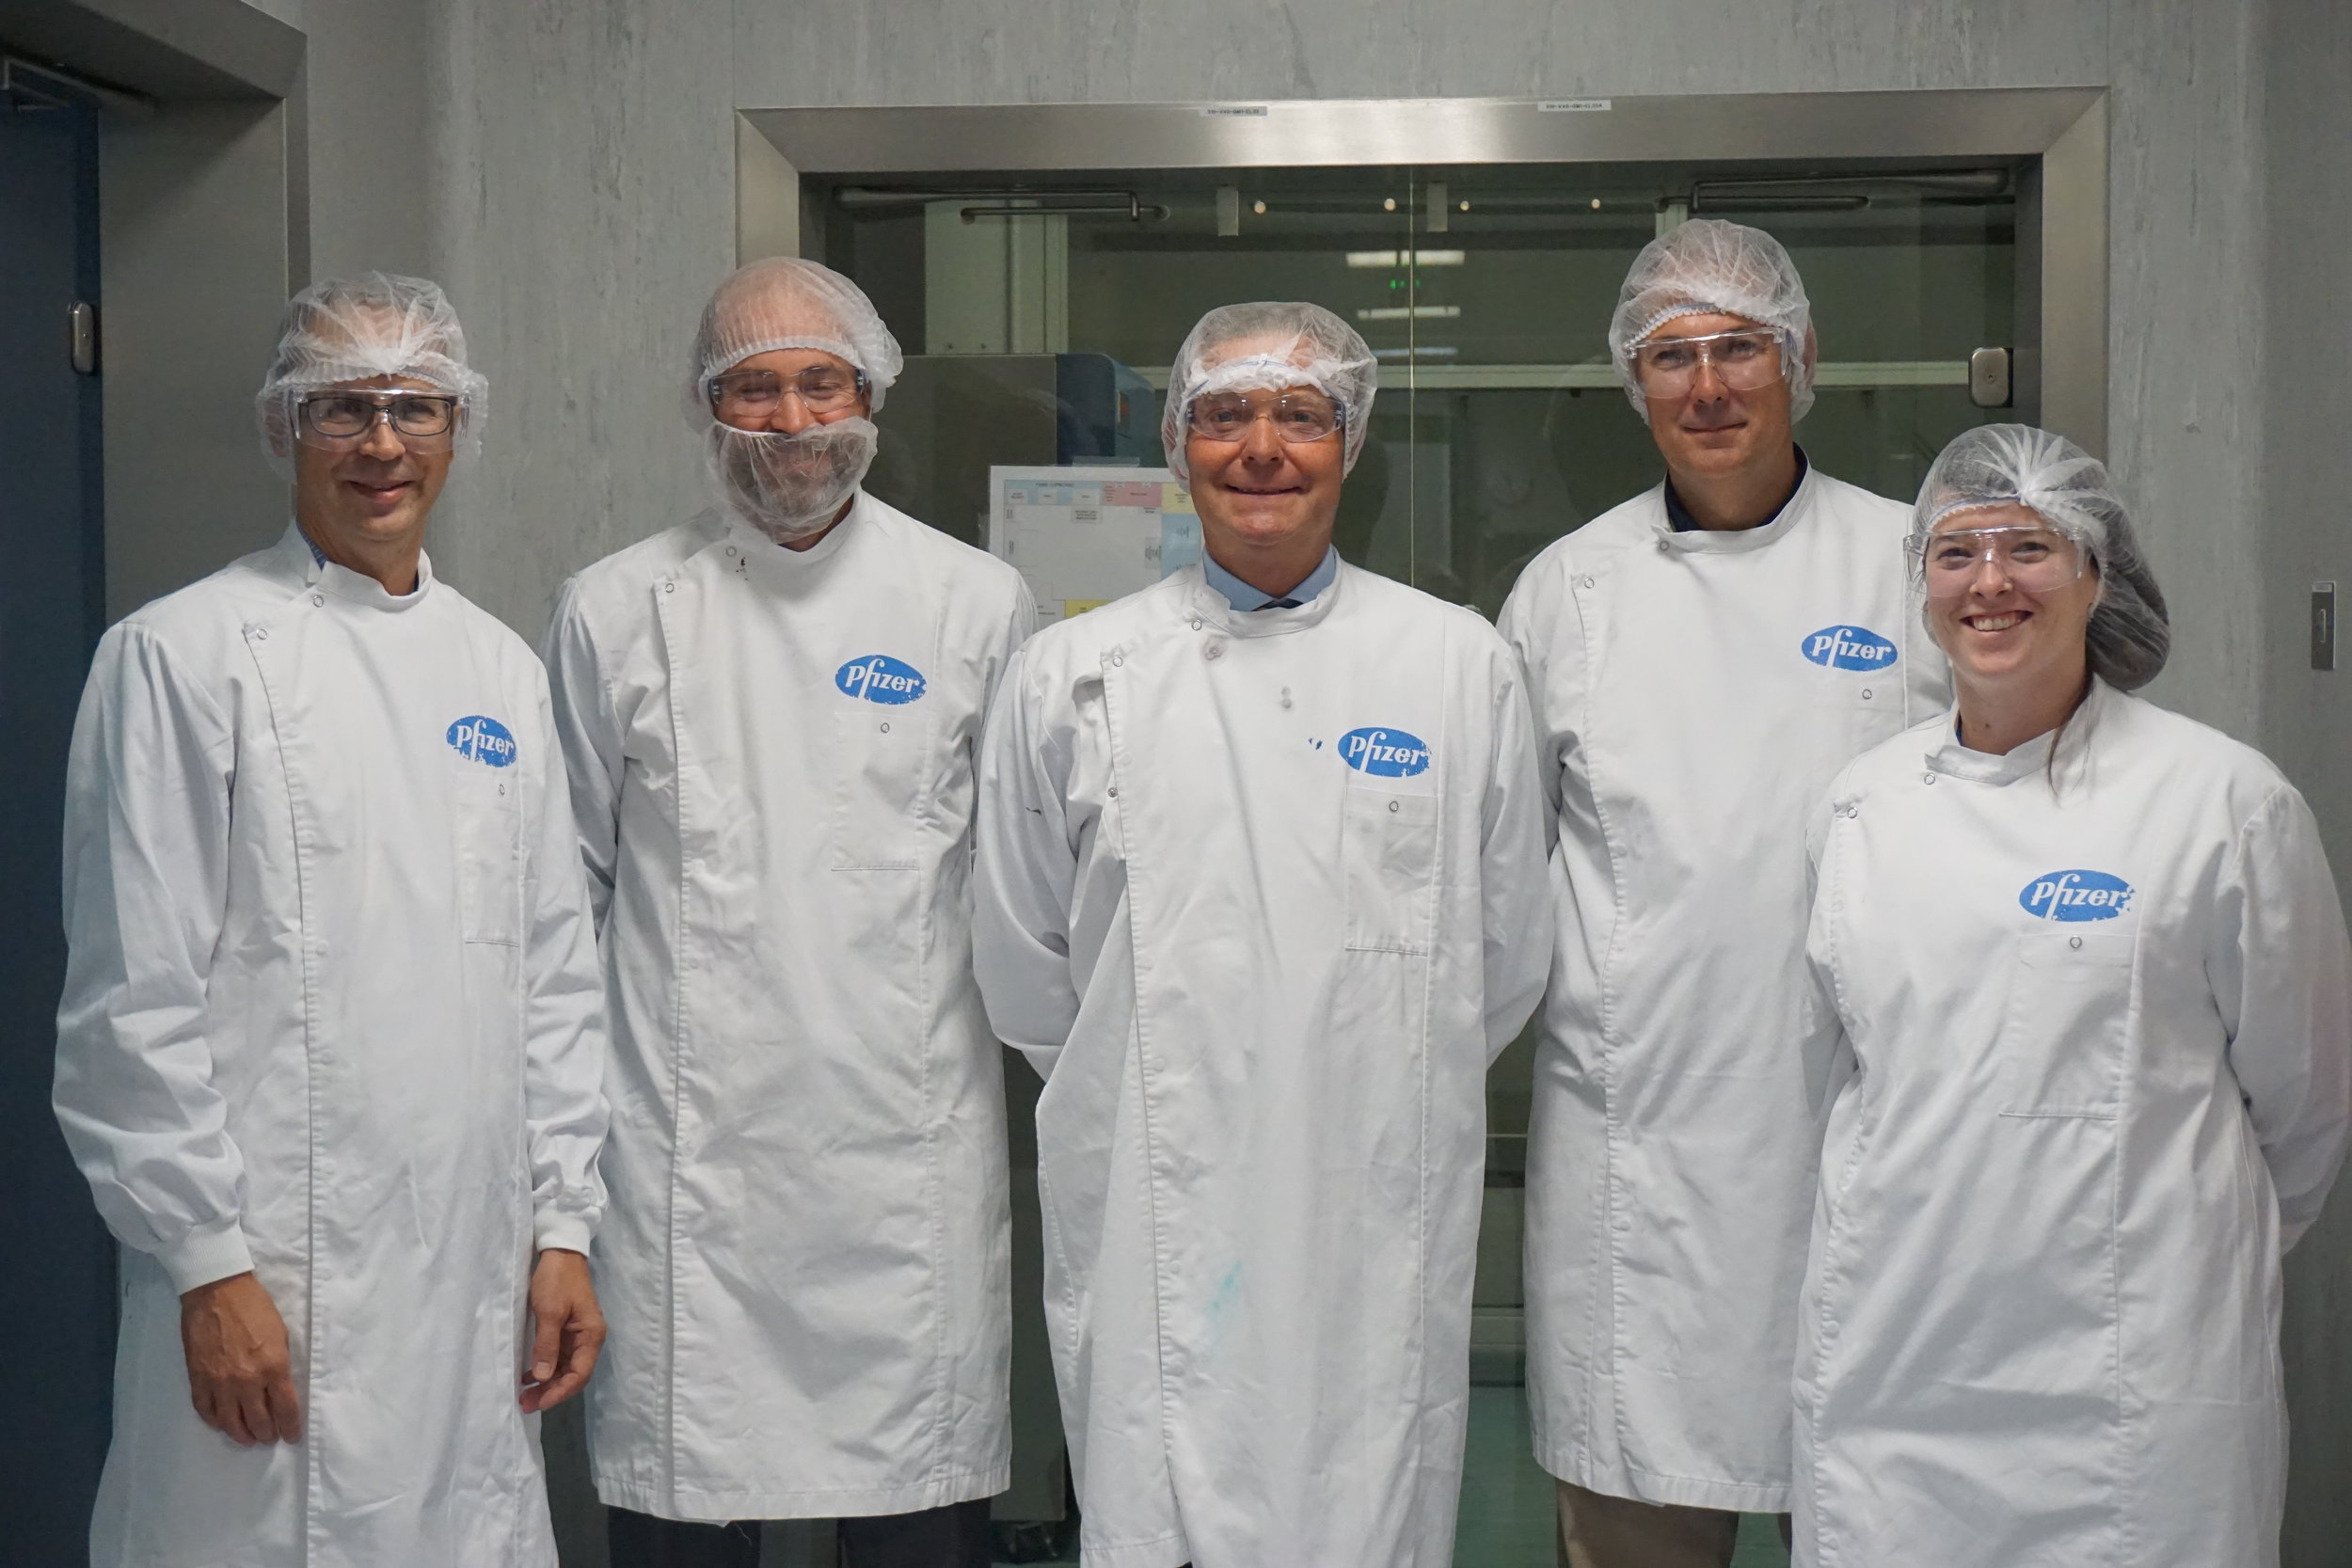 Craig with Pfizer representatives in the Continuous Mixing Technology facility